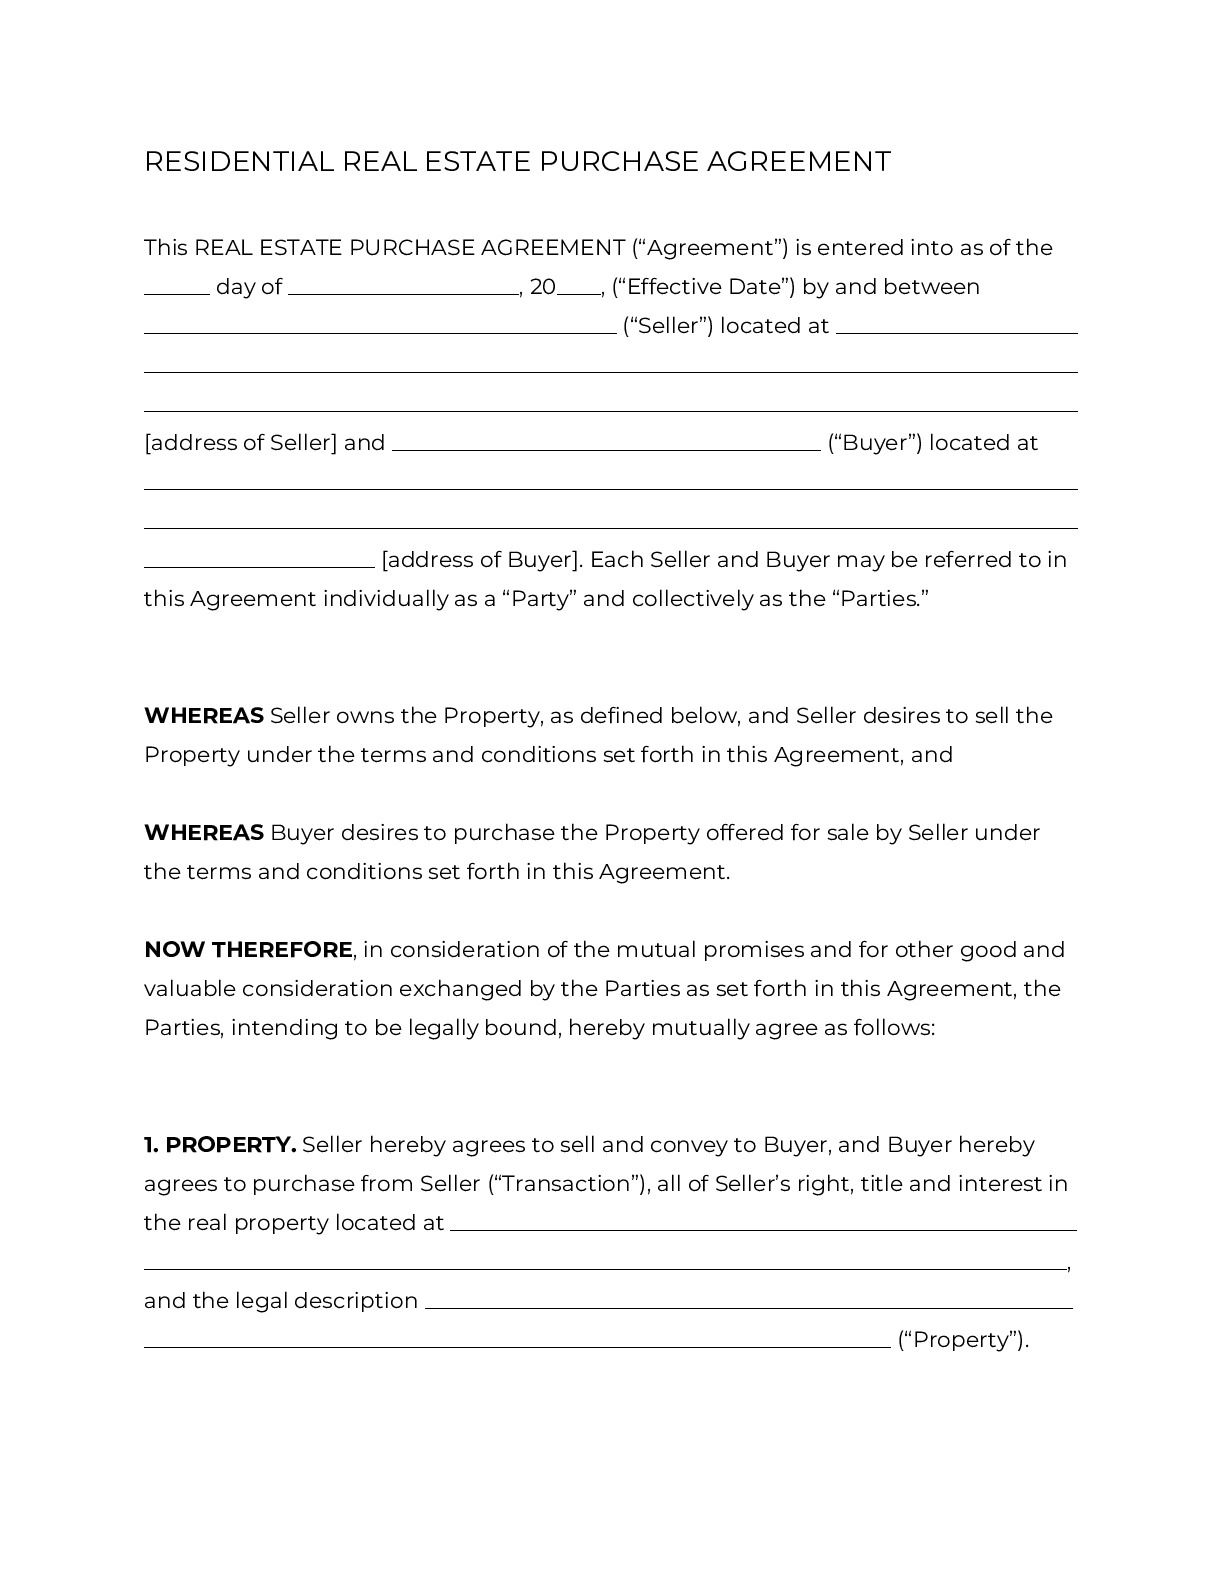 007 Outstanding Real Estate Purchase Contract California Picture  Commercial Agreement PdfFull